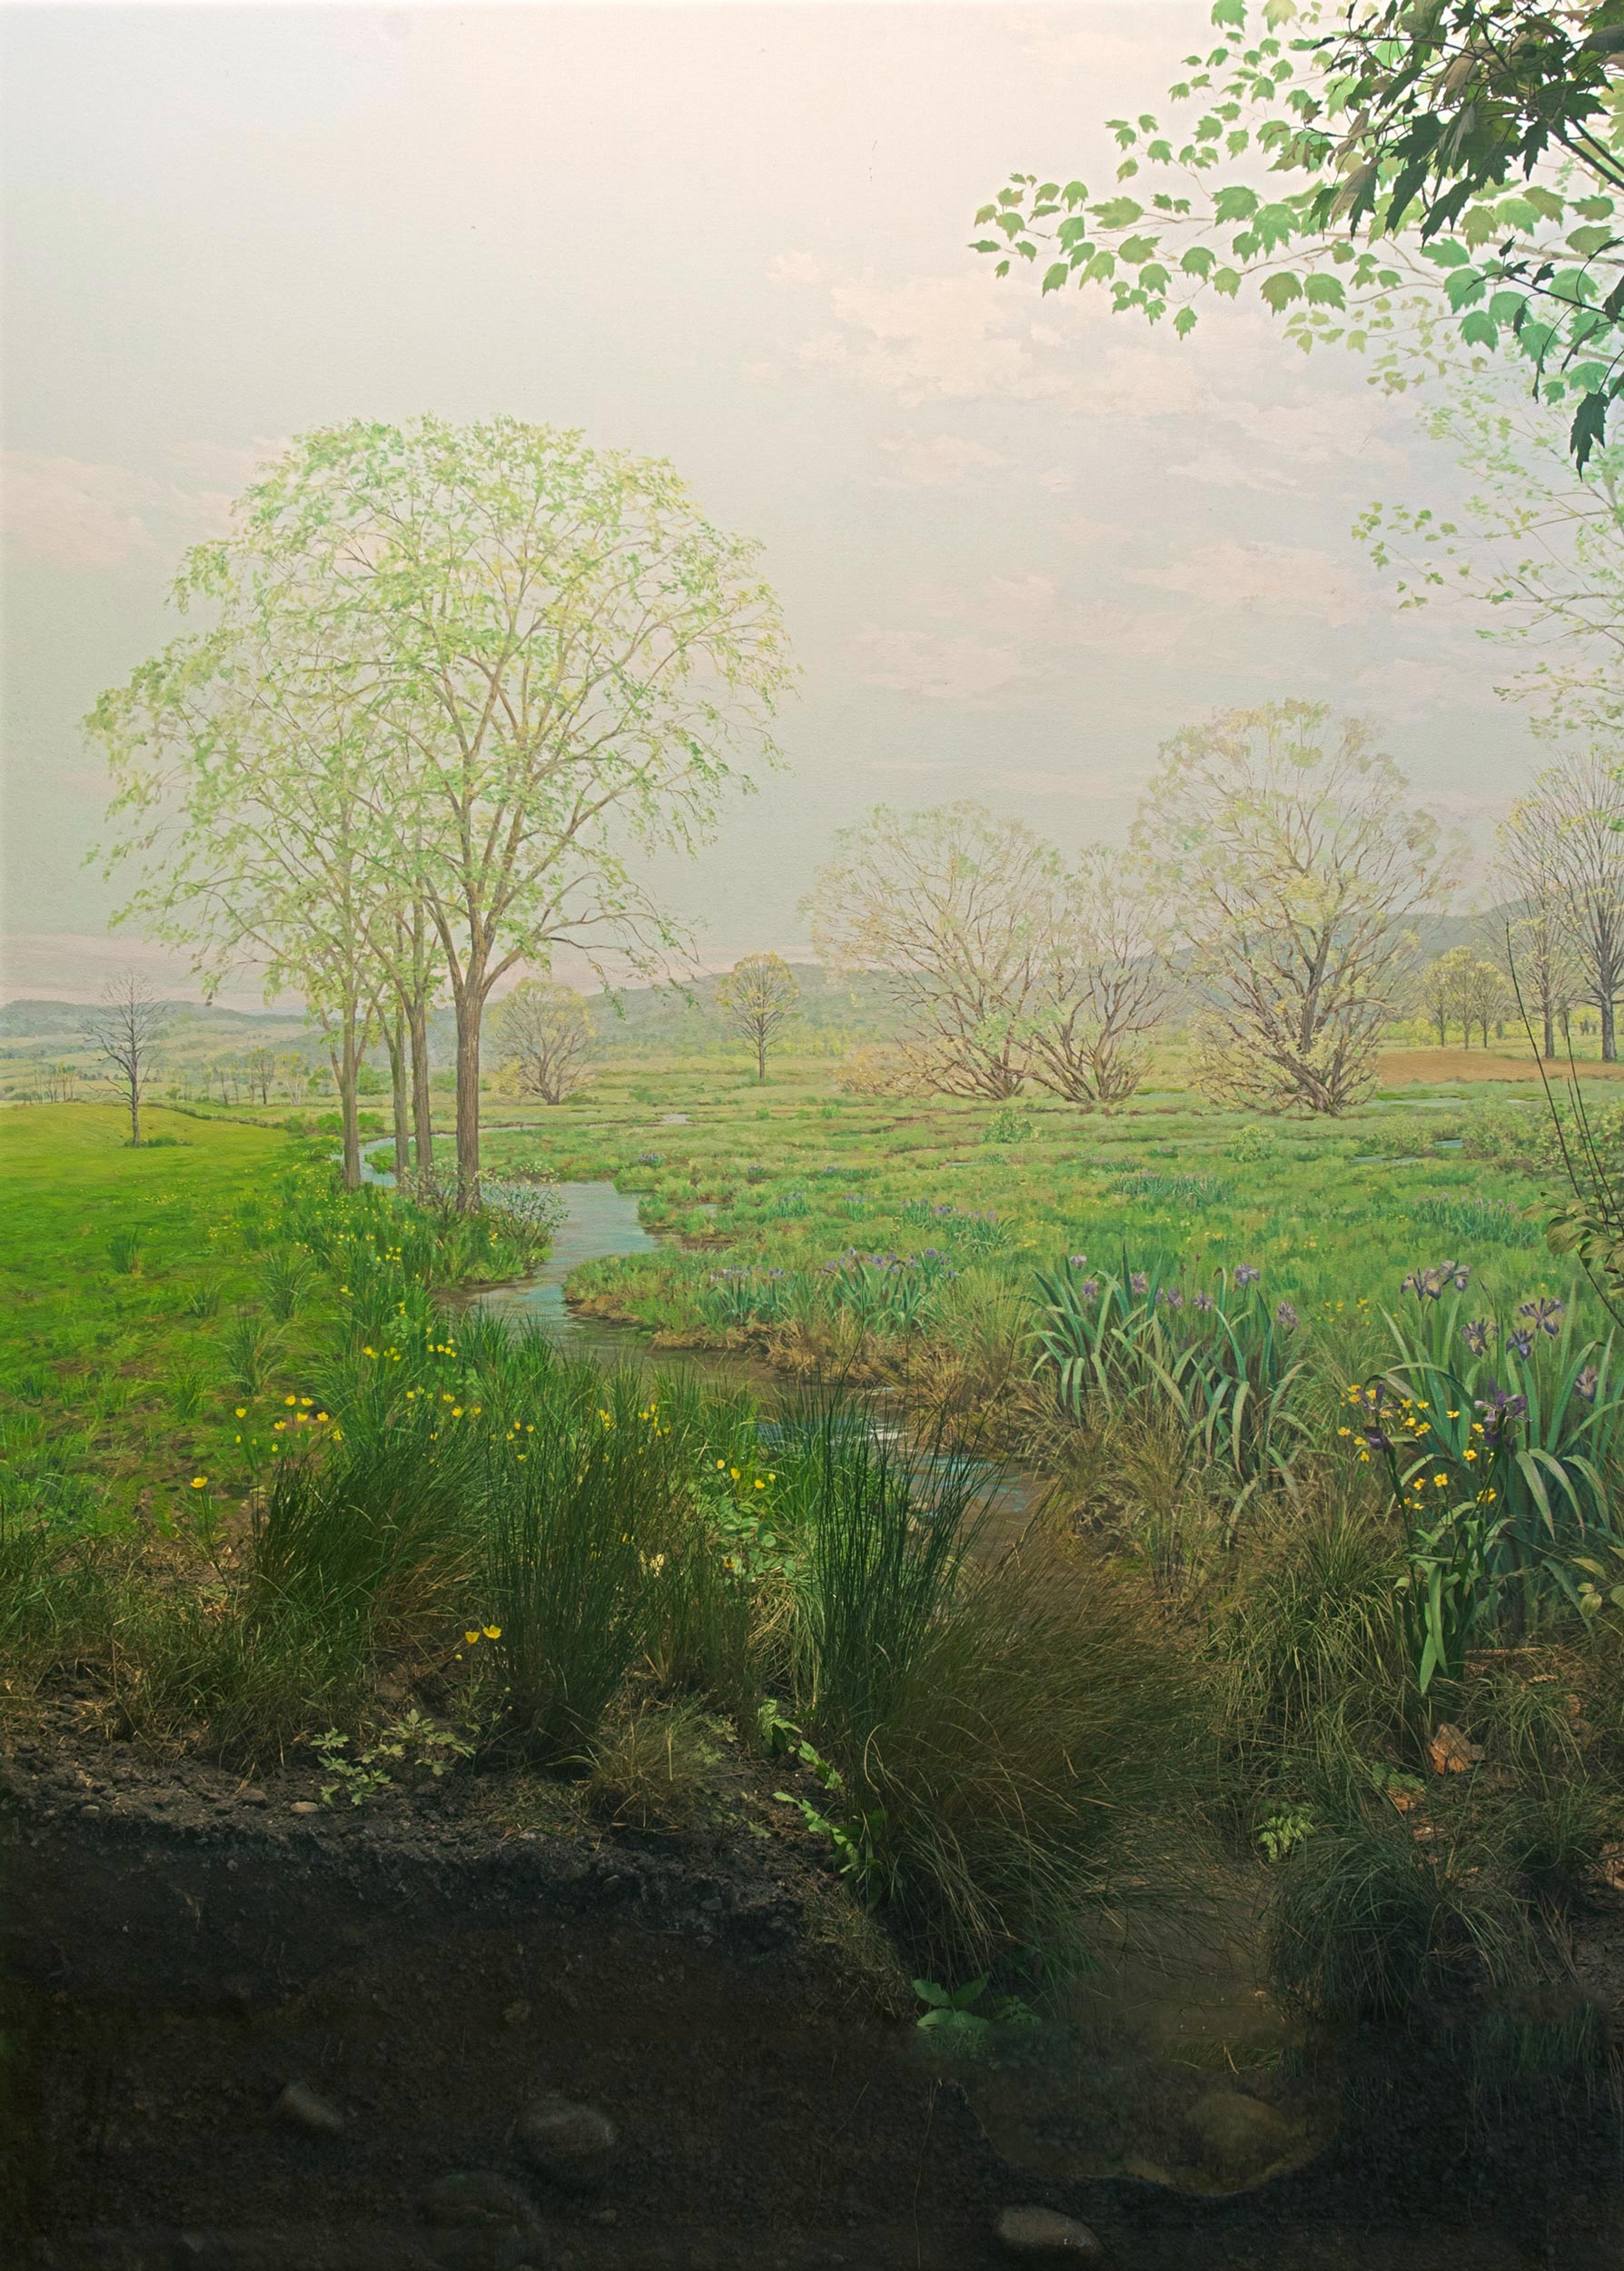 Diorama of a field with vegetation and a stream of water